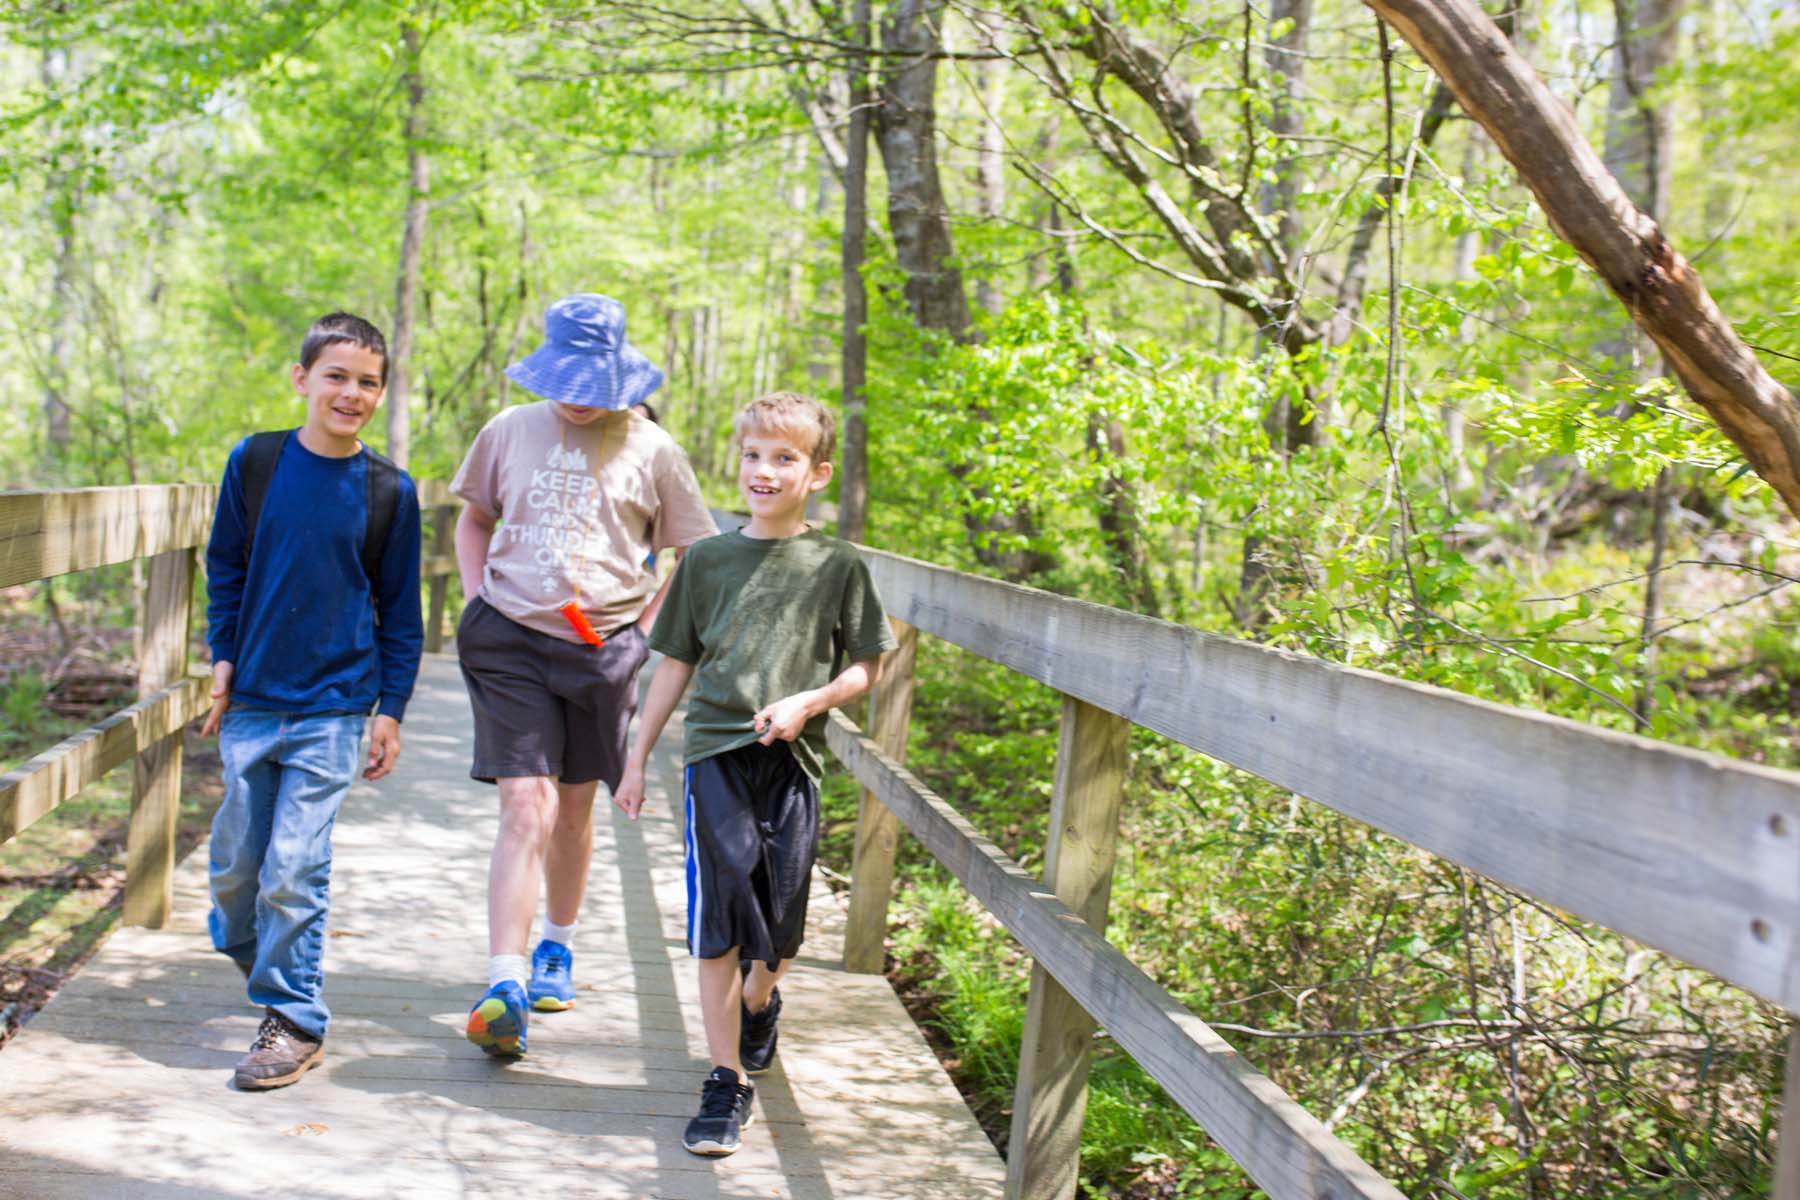 Three boys walk down the boardwalk. They are about 10 to 12 in age. One wears a navy blue shirt and jeans. One wears a khaki shirt, dark shorts, and a denim bucket hat. The third wears dark shorts and an olive green shirt. They are surrounded in green trees and vegetation. They are smiling.